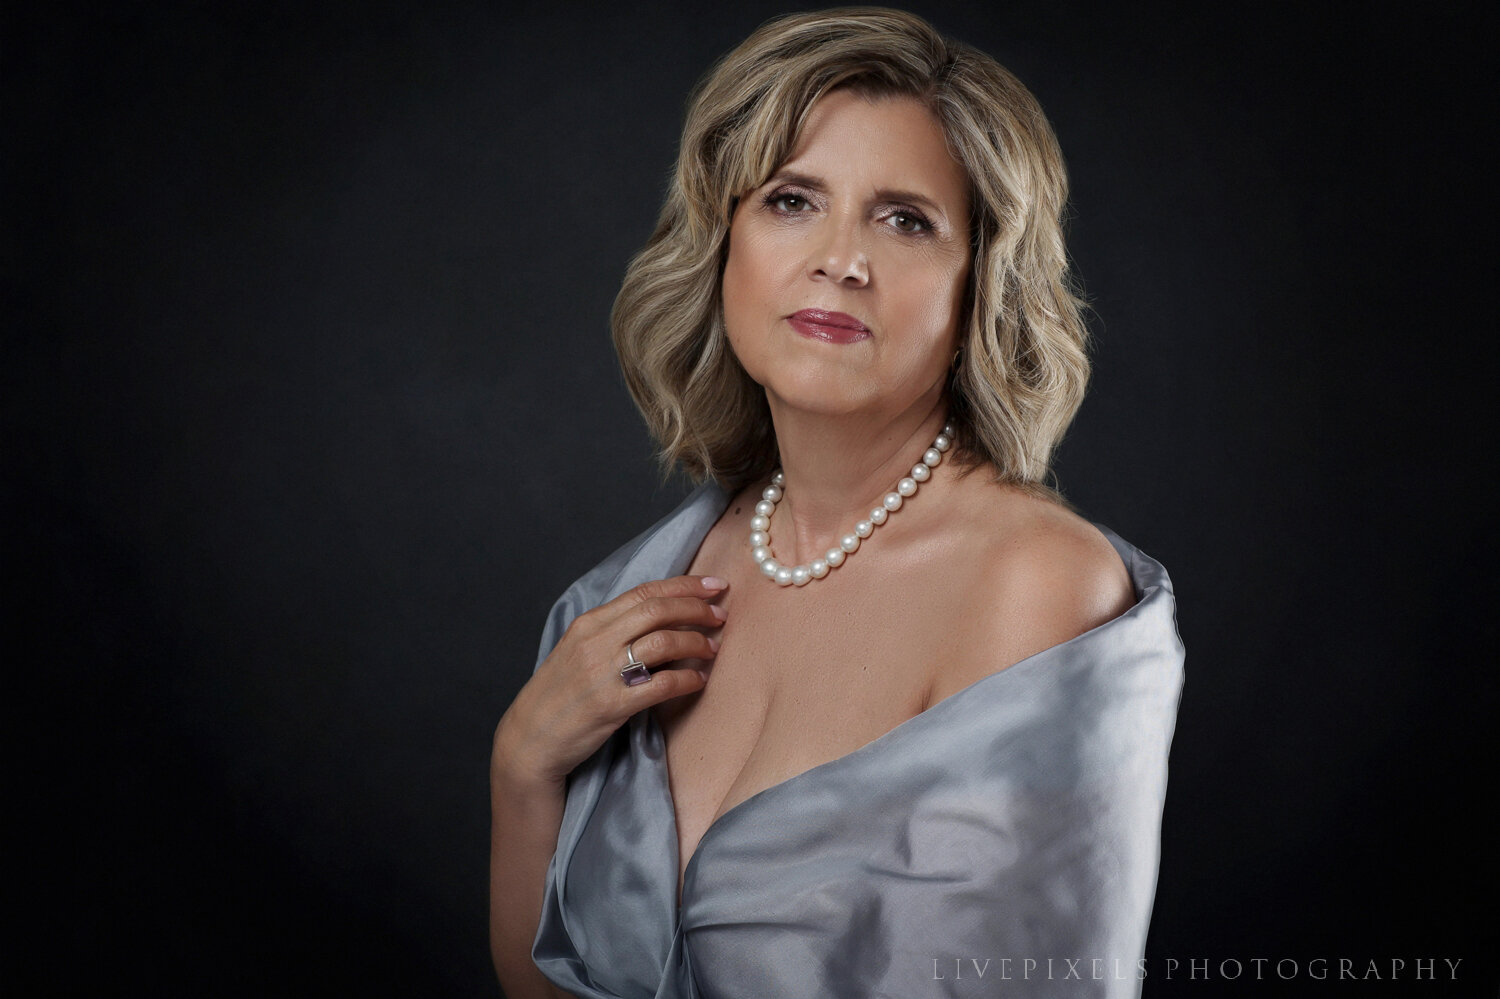 portrait of a woman with pearl necklace.jpg